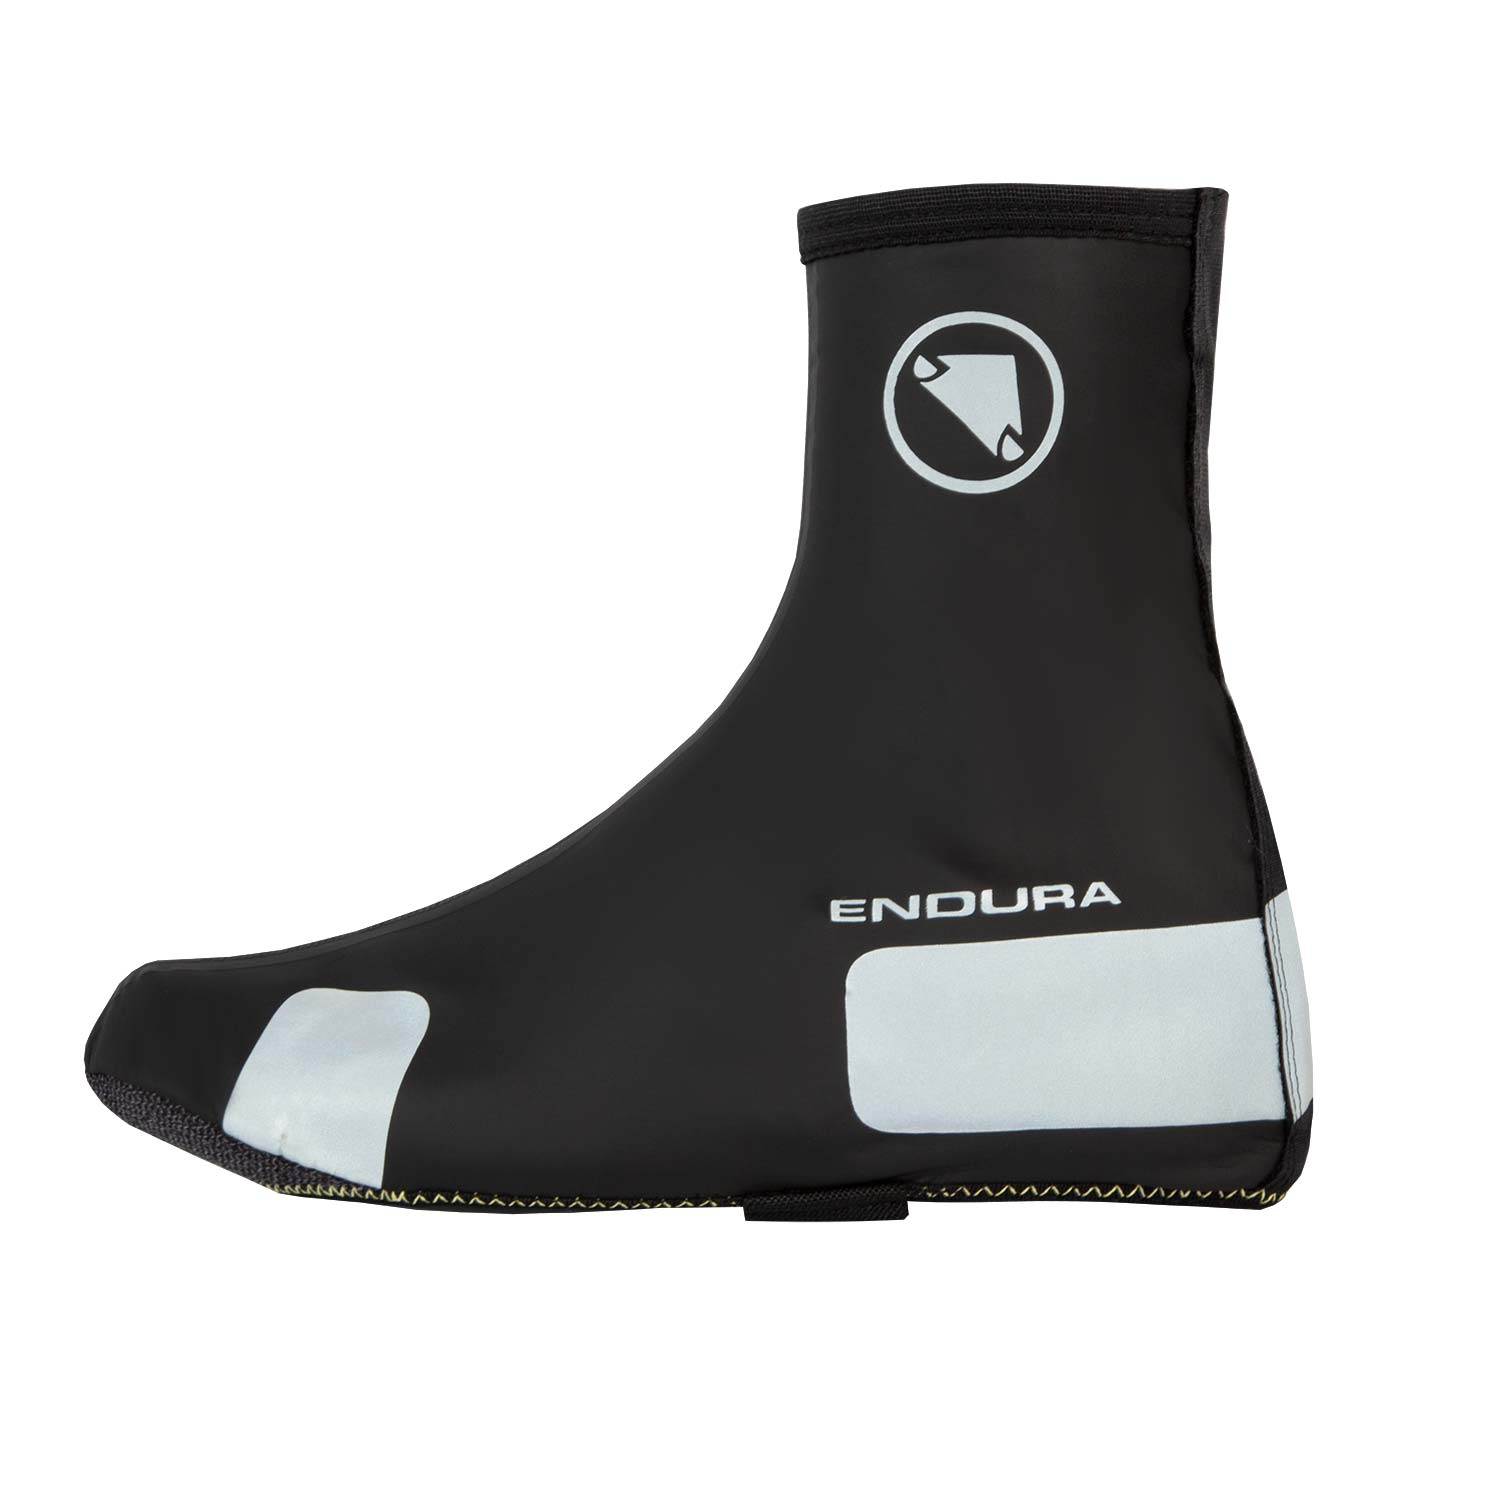 Endura Urban Luminite (Medium) Waterproof Commuter Cycling Overshoes